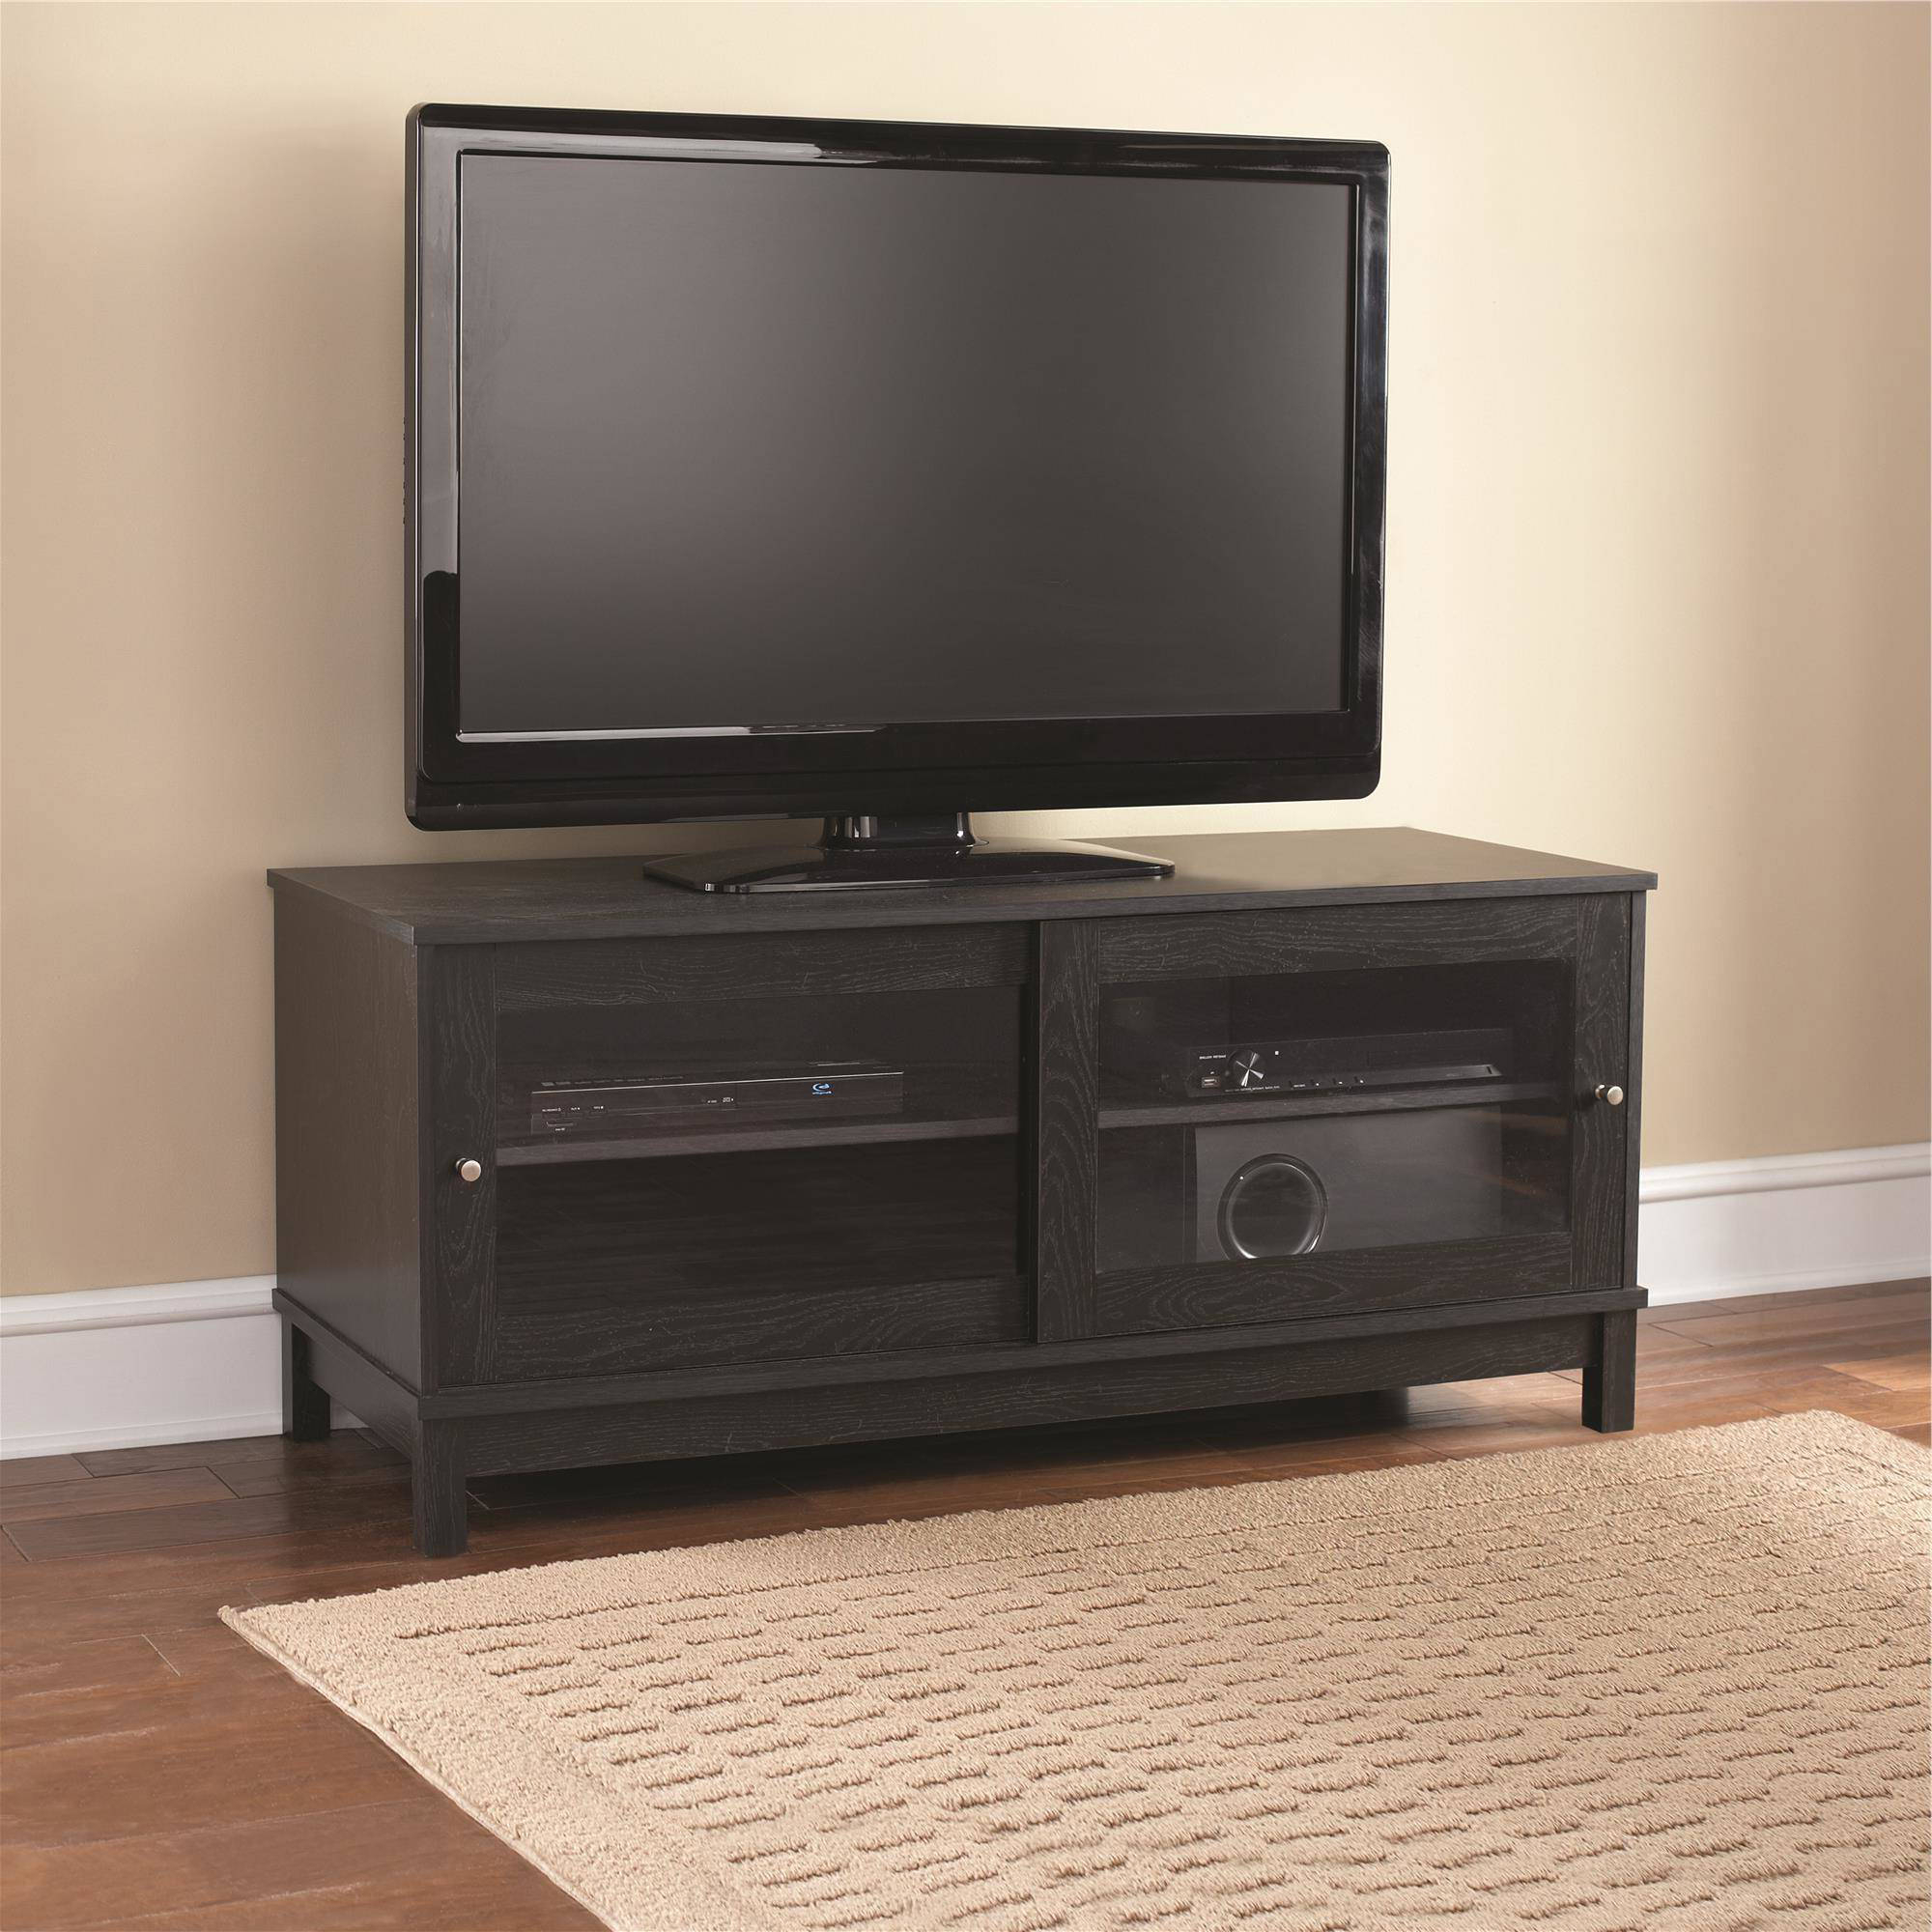 "Best And Newest Mainstays 55"" Tv Stand With Sliding Glass Doors, Multiple Colors Within Wooden Tv Stands For Flat Screens (View 3 of 20)"